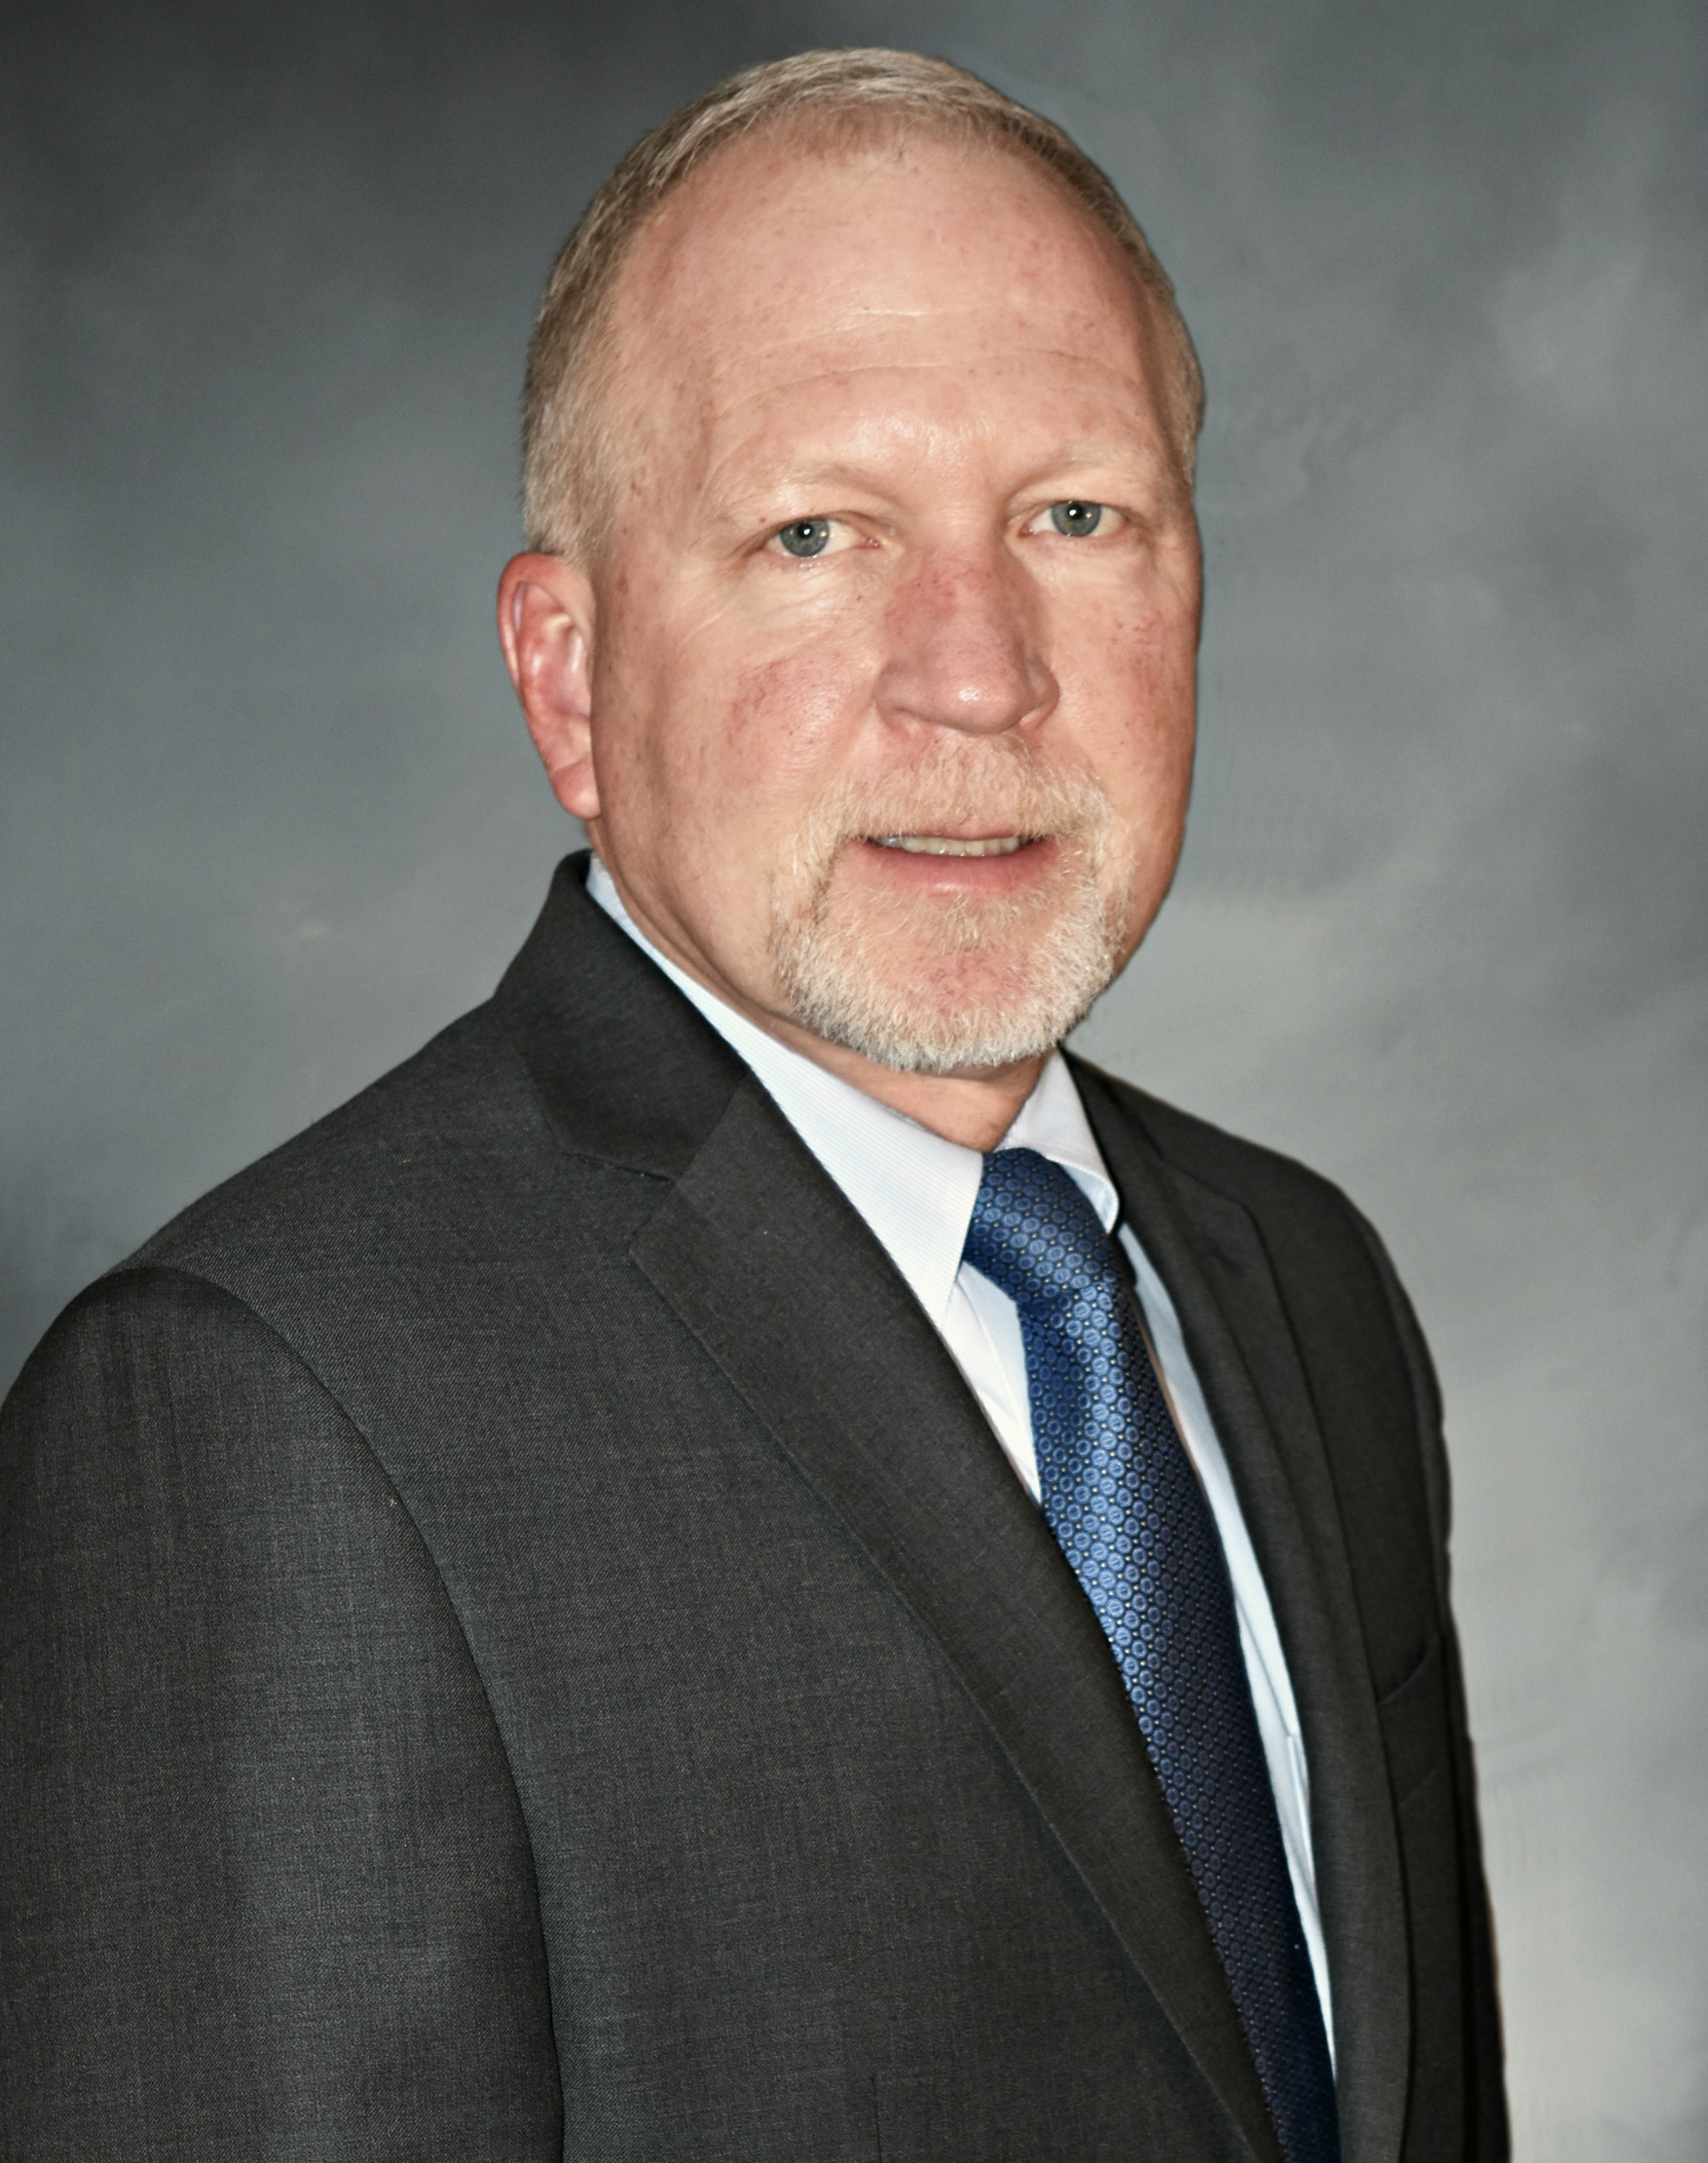 Jackson O'Keefe, LLP Wethersfield Law Firm image 6